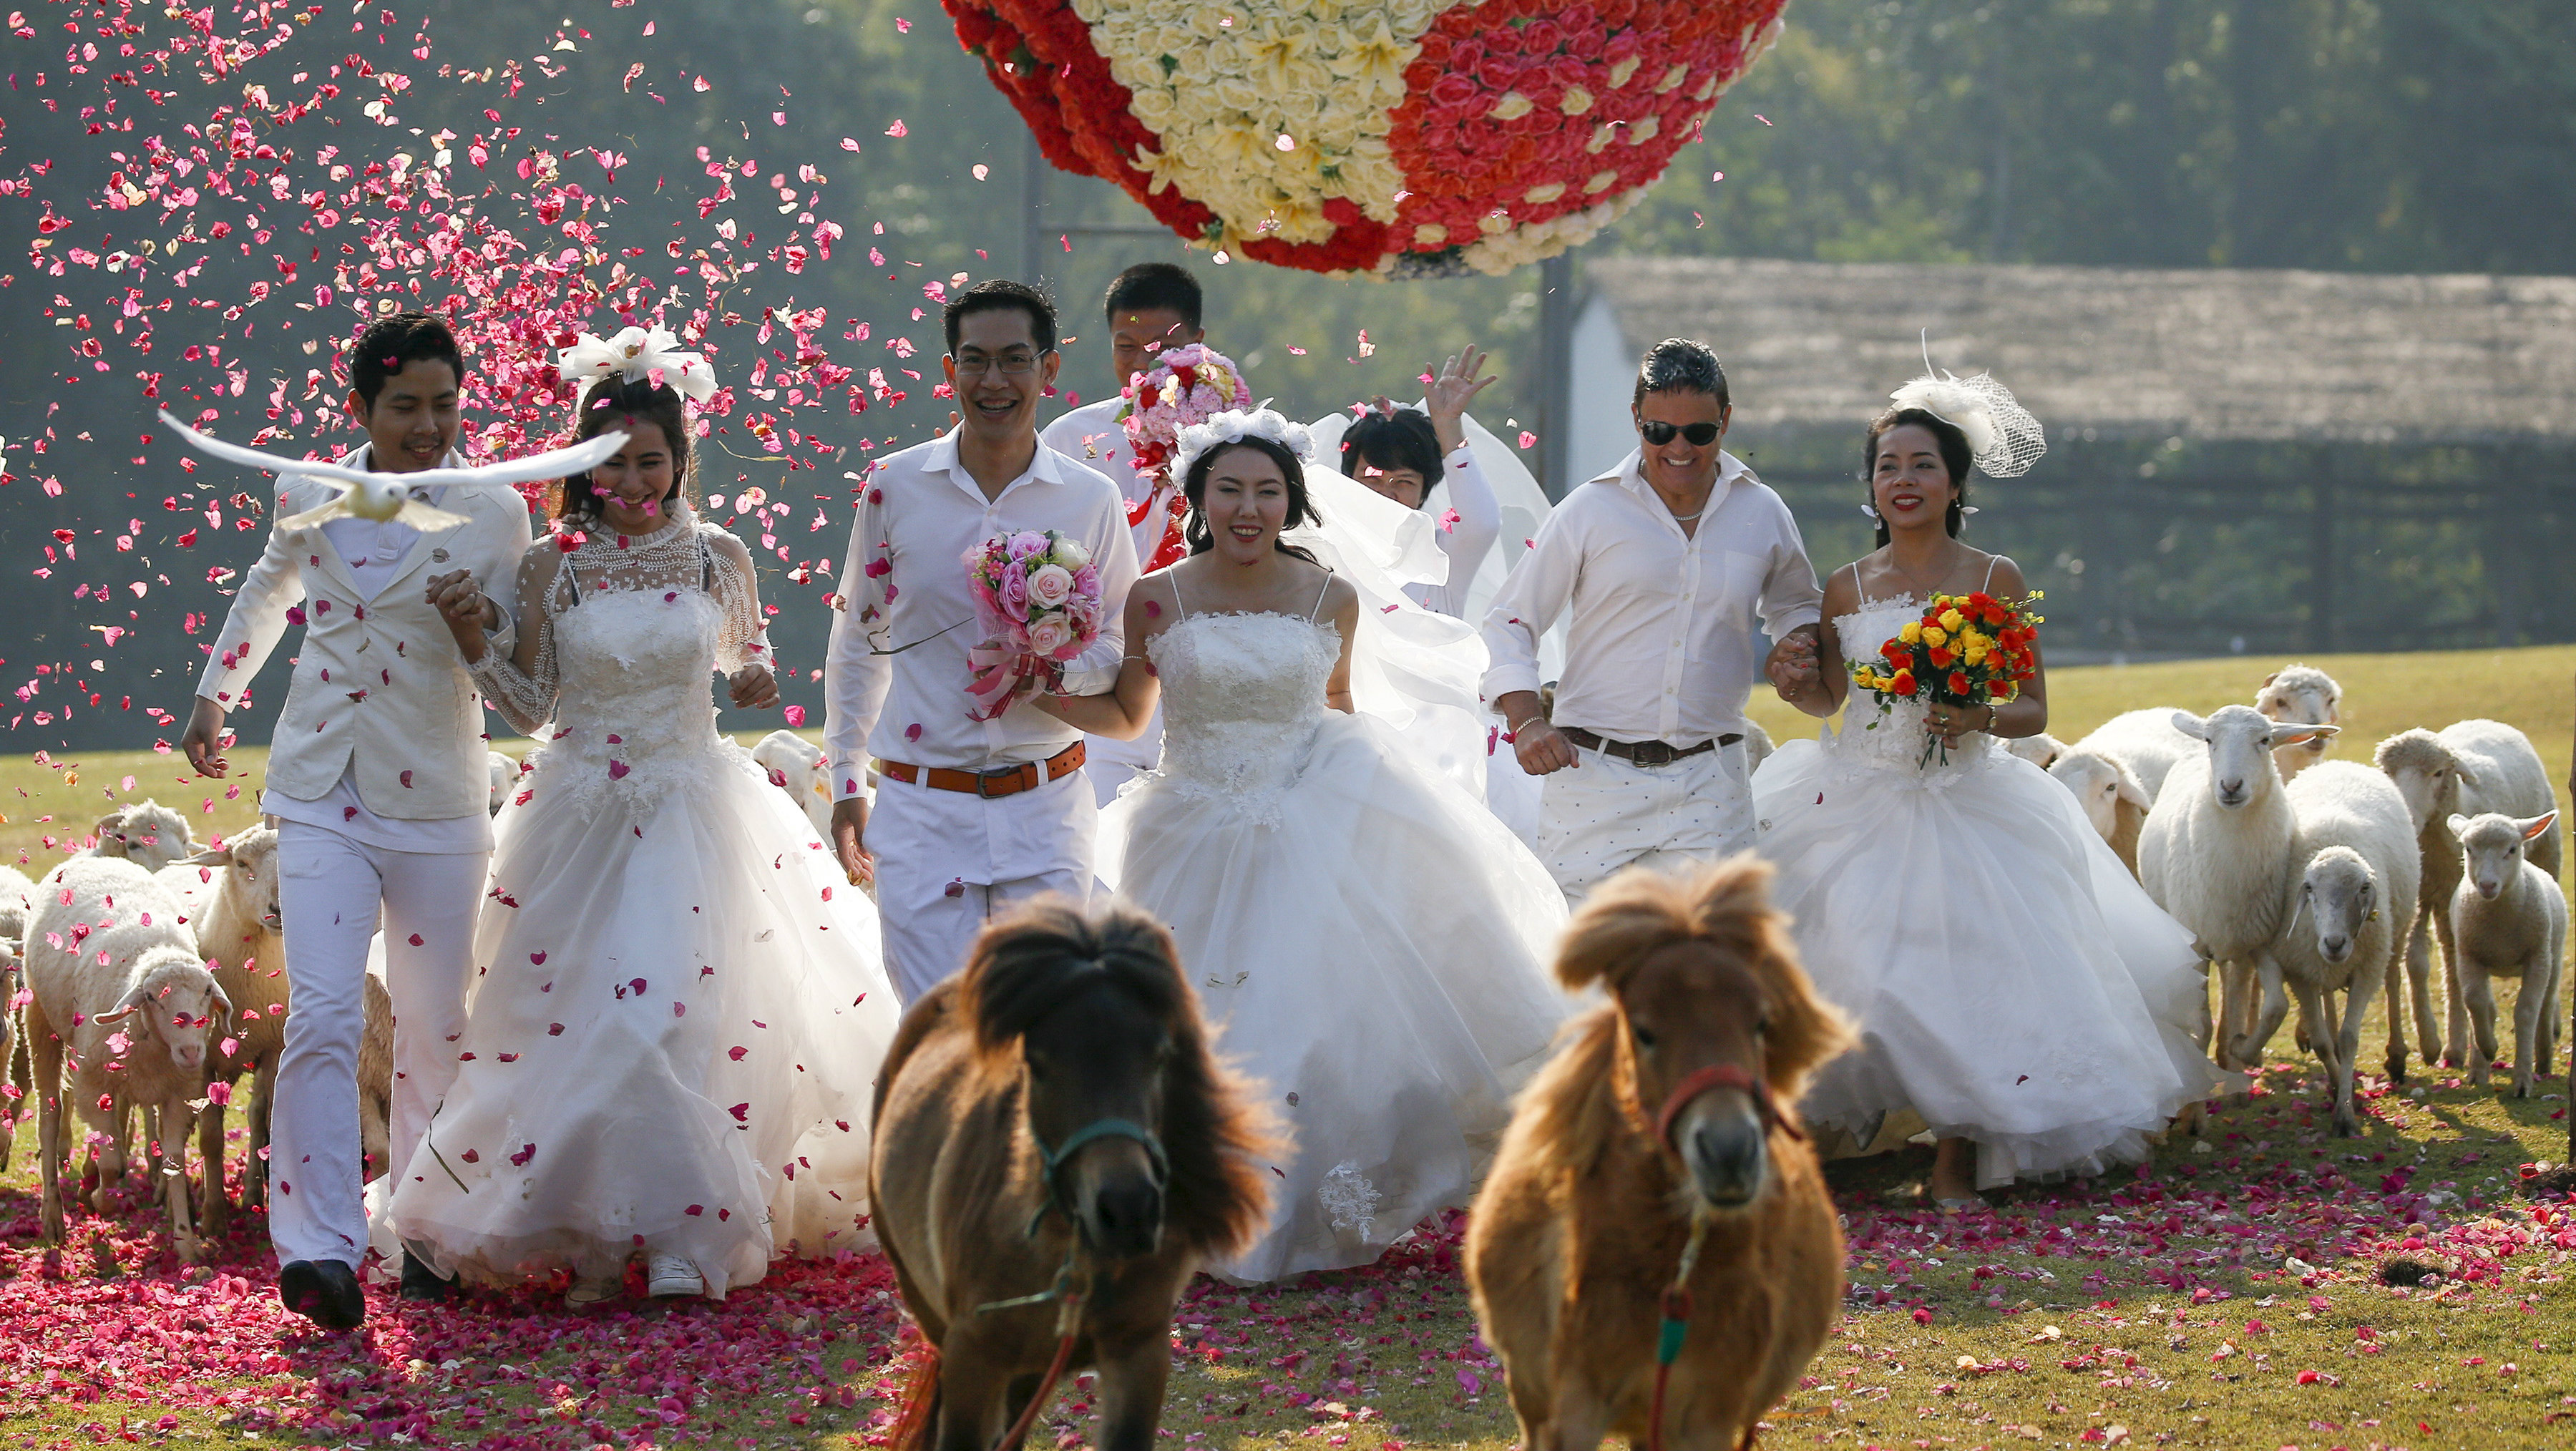 (From L-R) Kittinant Suwansiri and Jintara Promchat, Kasemsak Jiranantiporn and Duangruethai Amnuayweroj, and David Leslie Chesterman and Charunee Koydun run among animals during a wedding ceremony ahead of Valentine's Day at a resort in Ratchaburi province, Thailand, February 13, 2016. Four Thai couples took part in the wedding ceremony arranged by the resort. REUTERS/Athit Perawongmetha